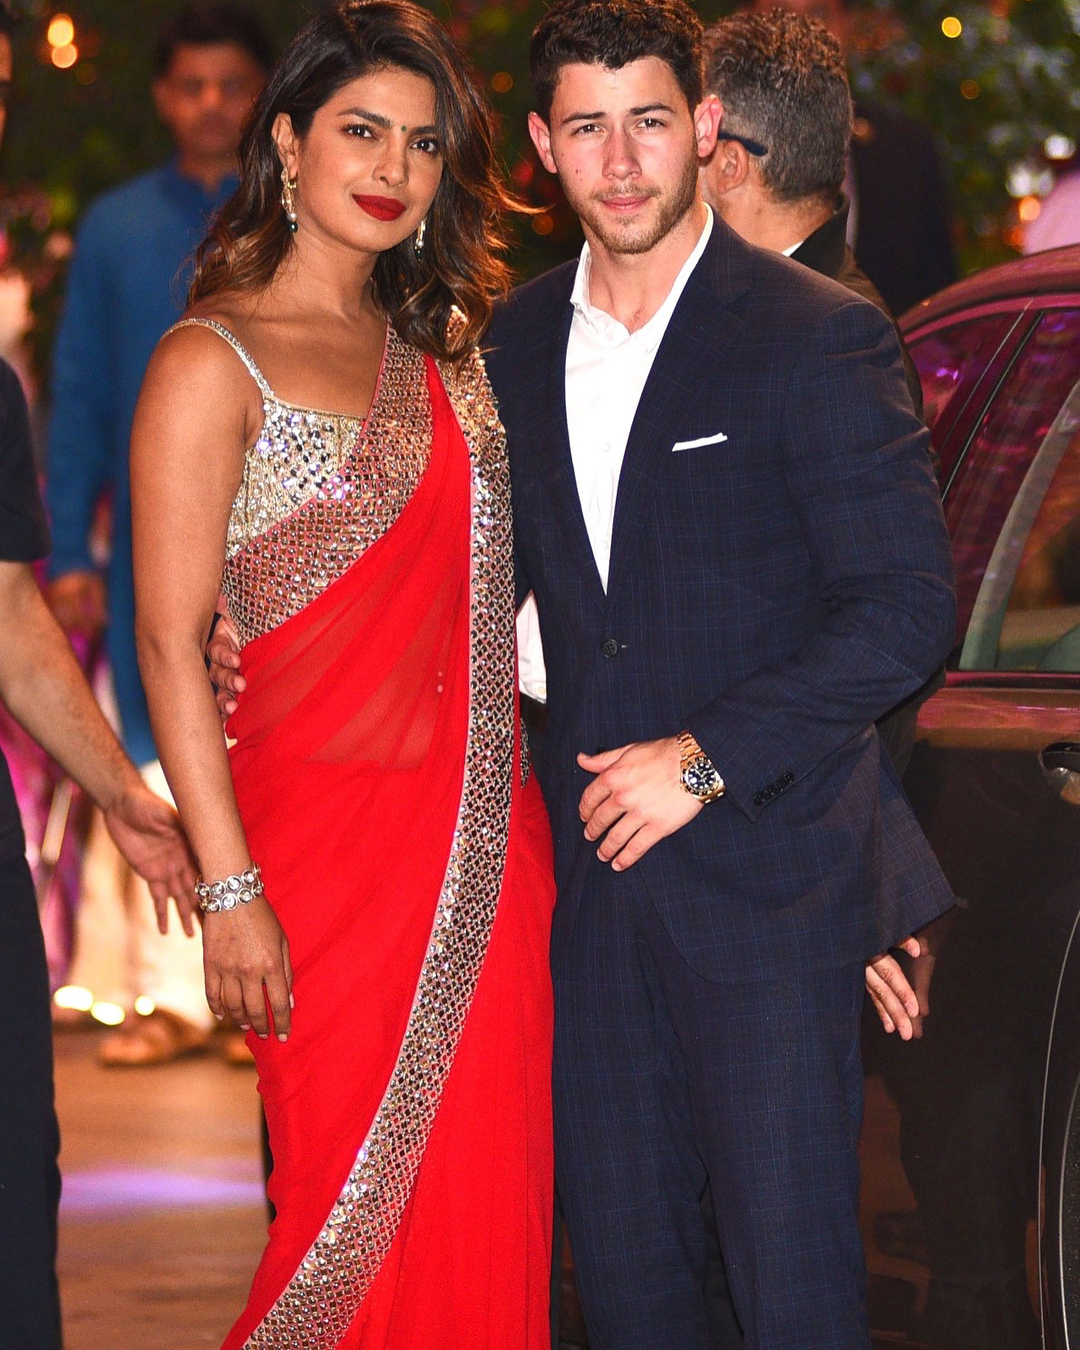 Nick Jonas and Priyanka Chopra Engaged!